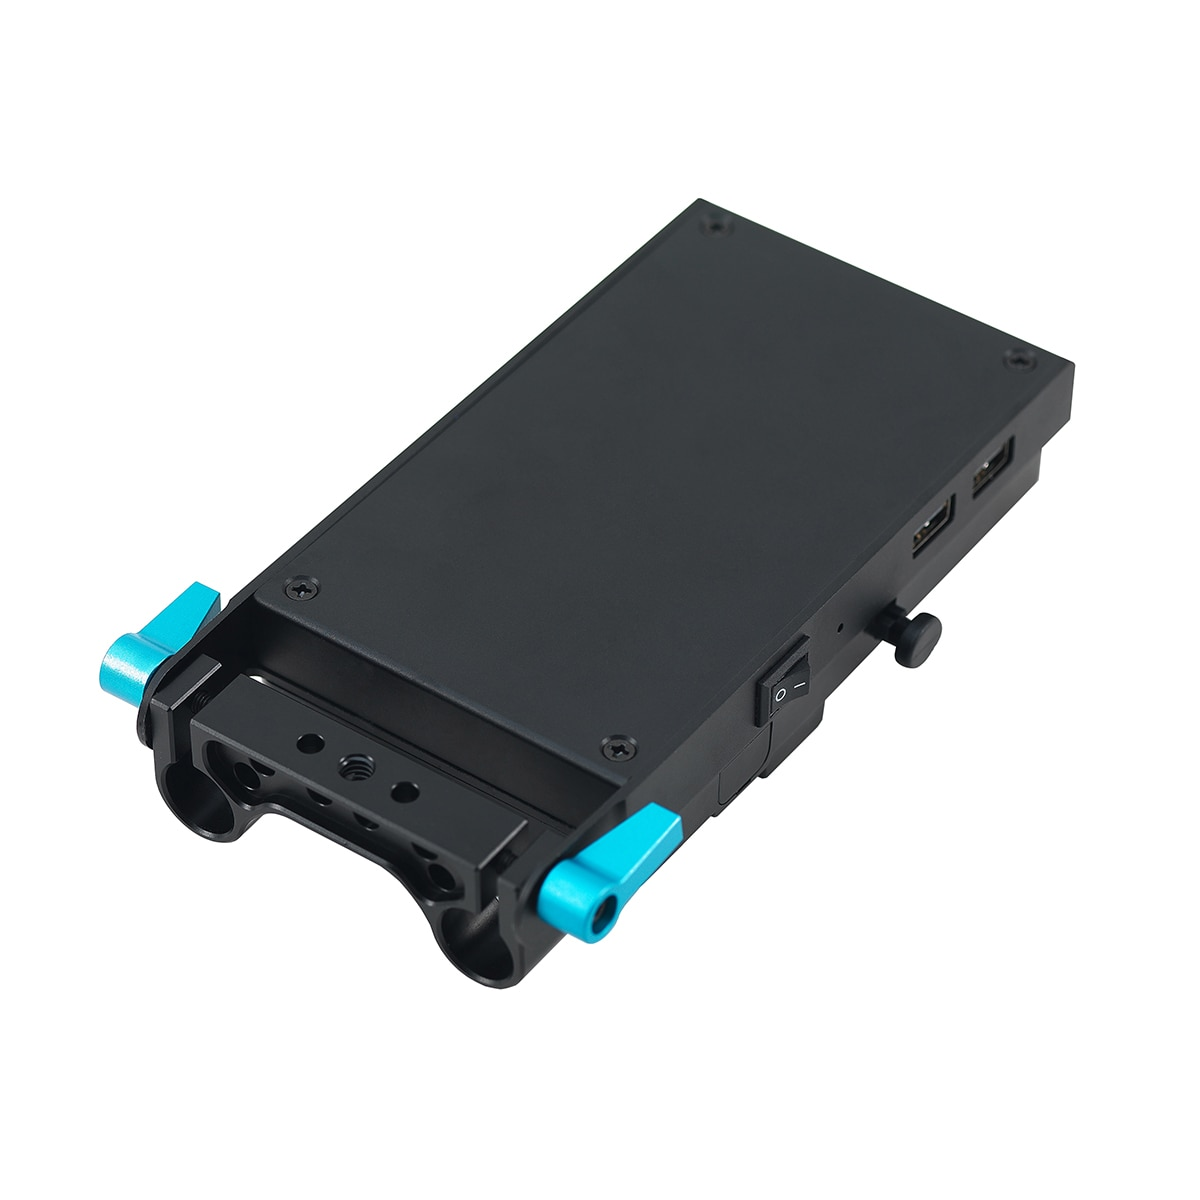 FOTGA Power Supply Systerm Battery Plate Adapter Plate for Fujifilm Fuji X-T4 GFX100S enlarge